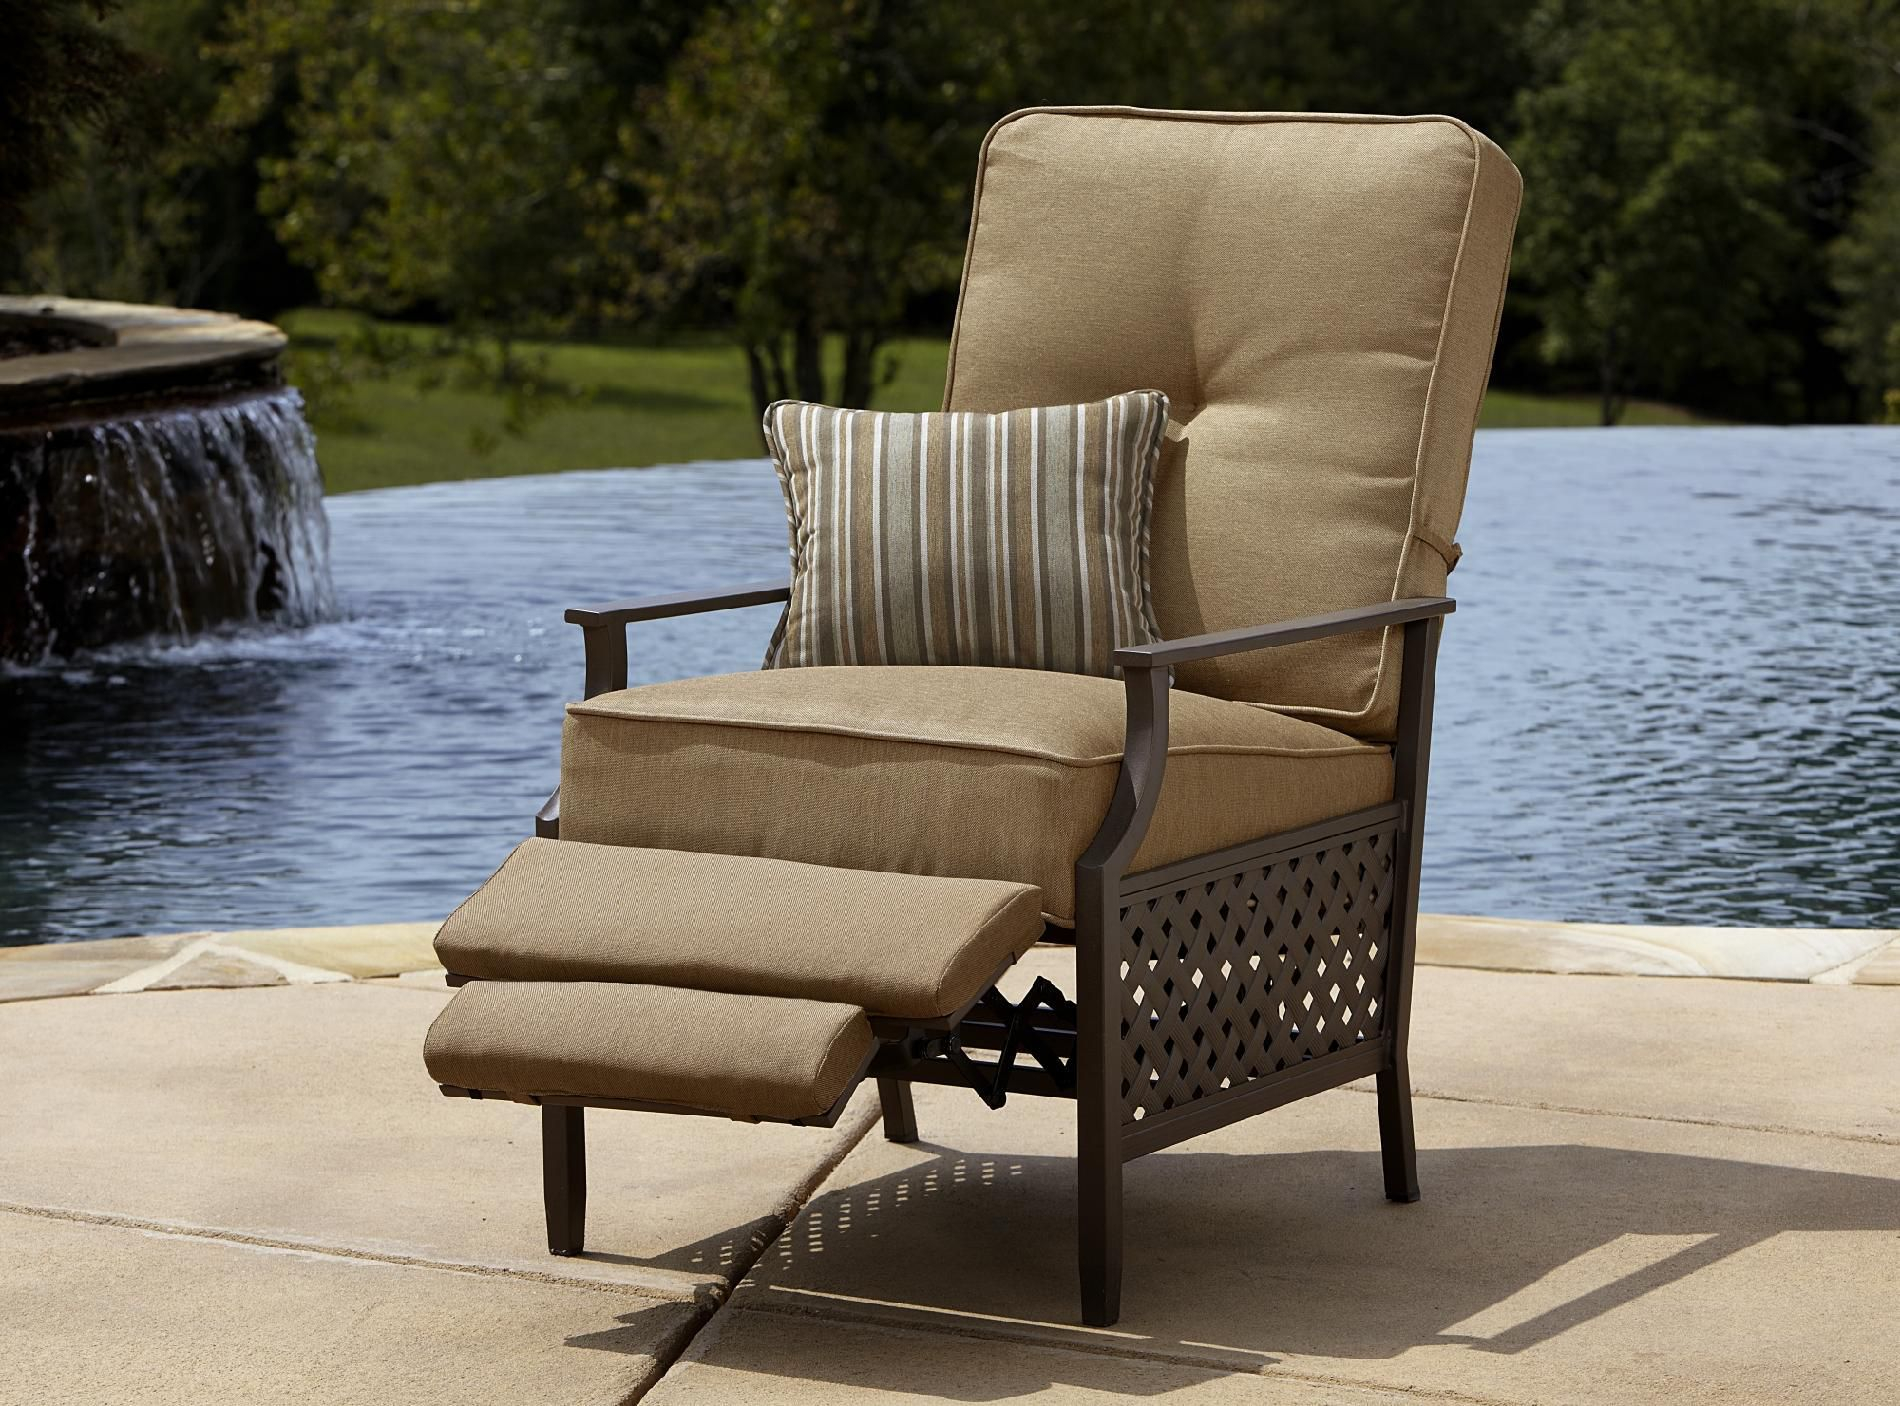 La Z Boy Outdoor Kennedy Recliner With Rust Resistant Anti pertaining to dimensions 1900 X 1406